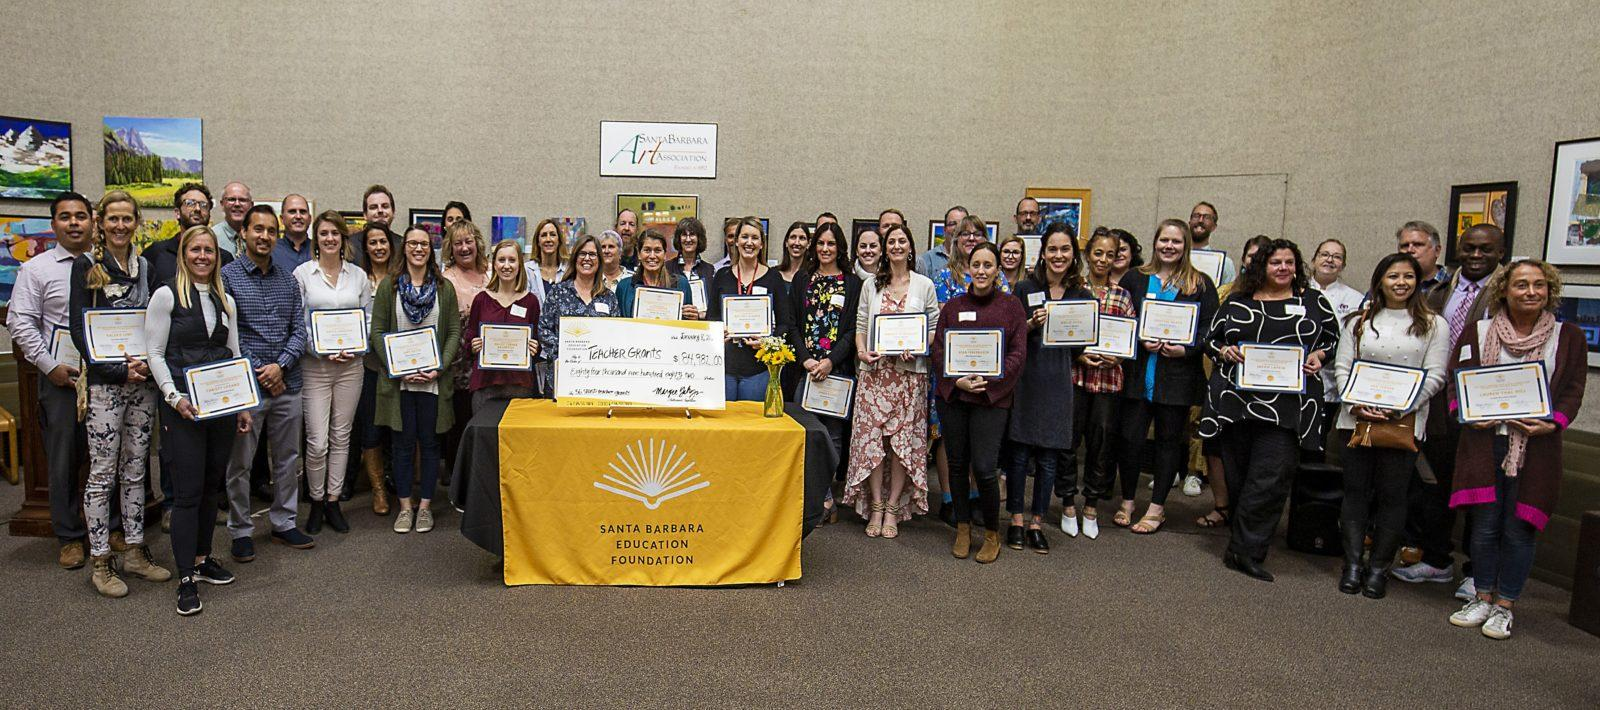 Santa Barbara Education Foundation Awards $85,000 in Teacher Grants